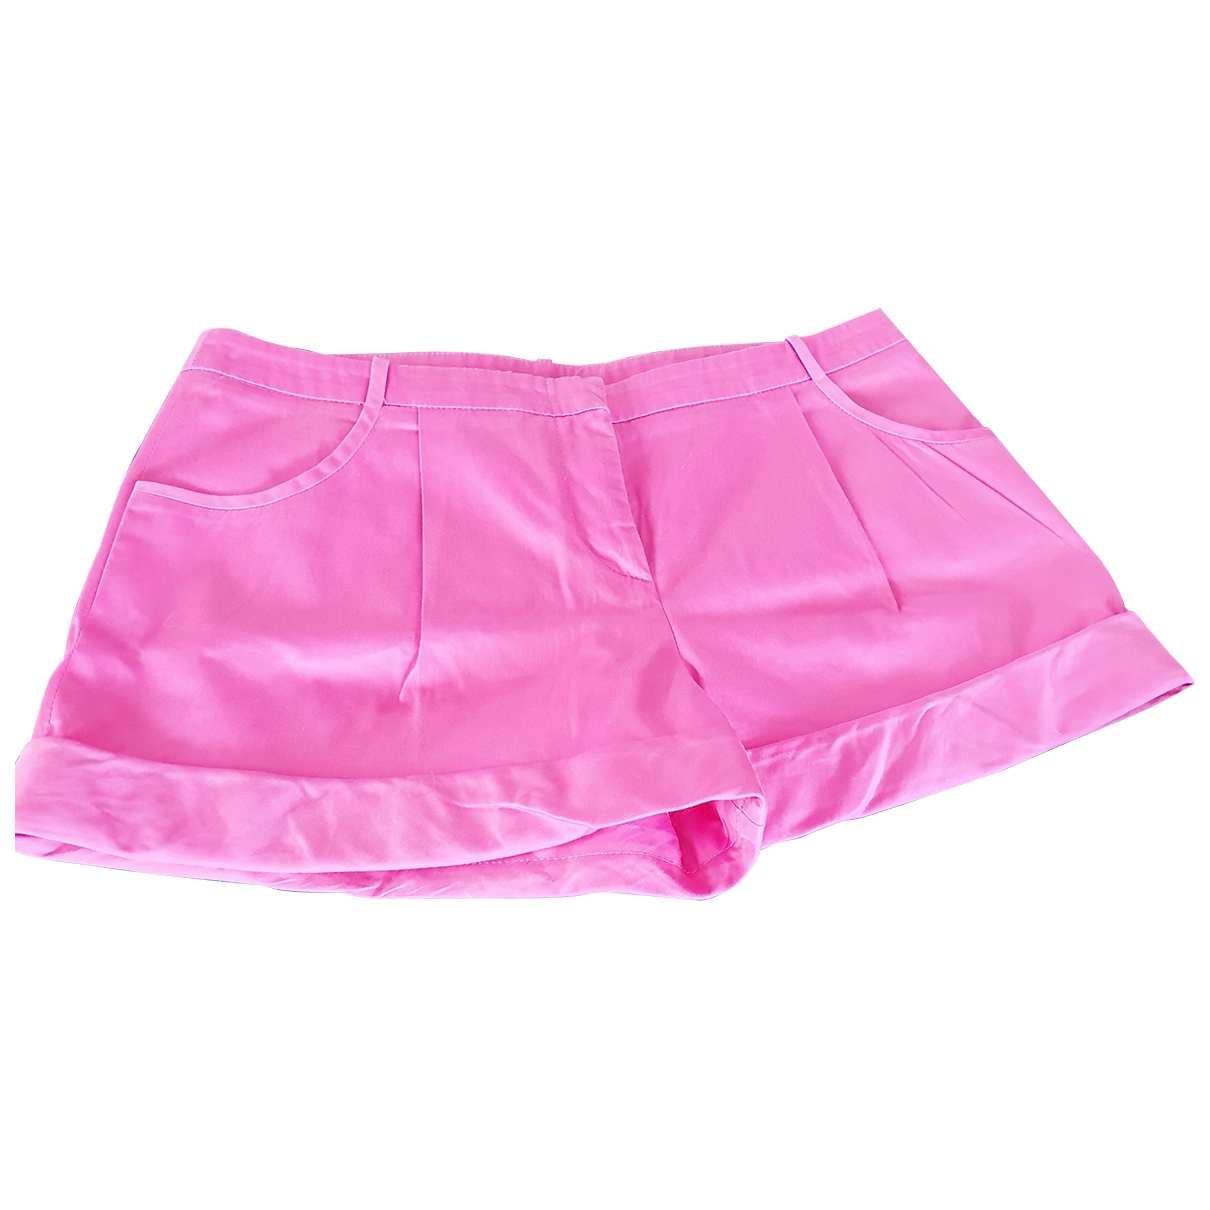 Emilio Pucci \N Pink Cotton Shorts for Women 38 FR